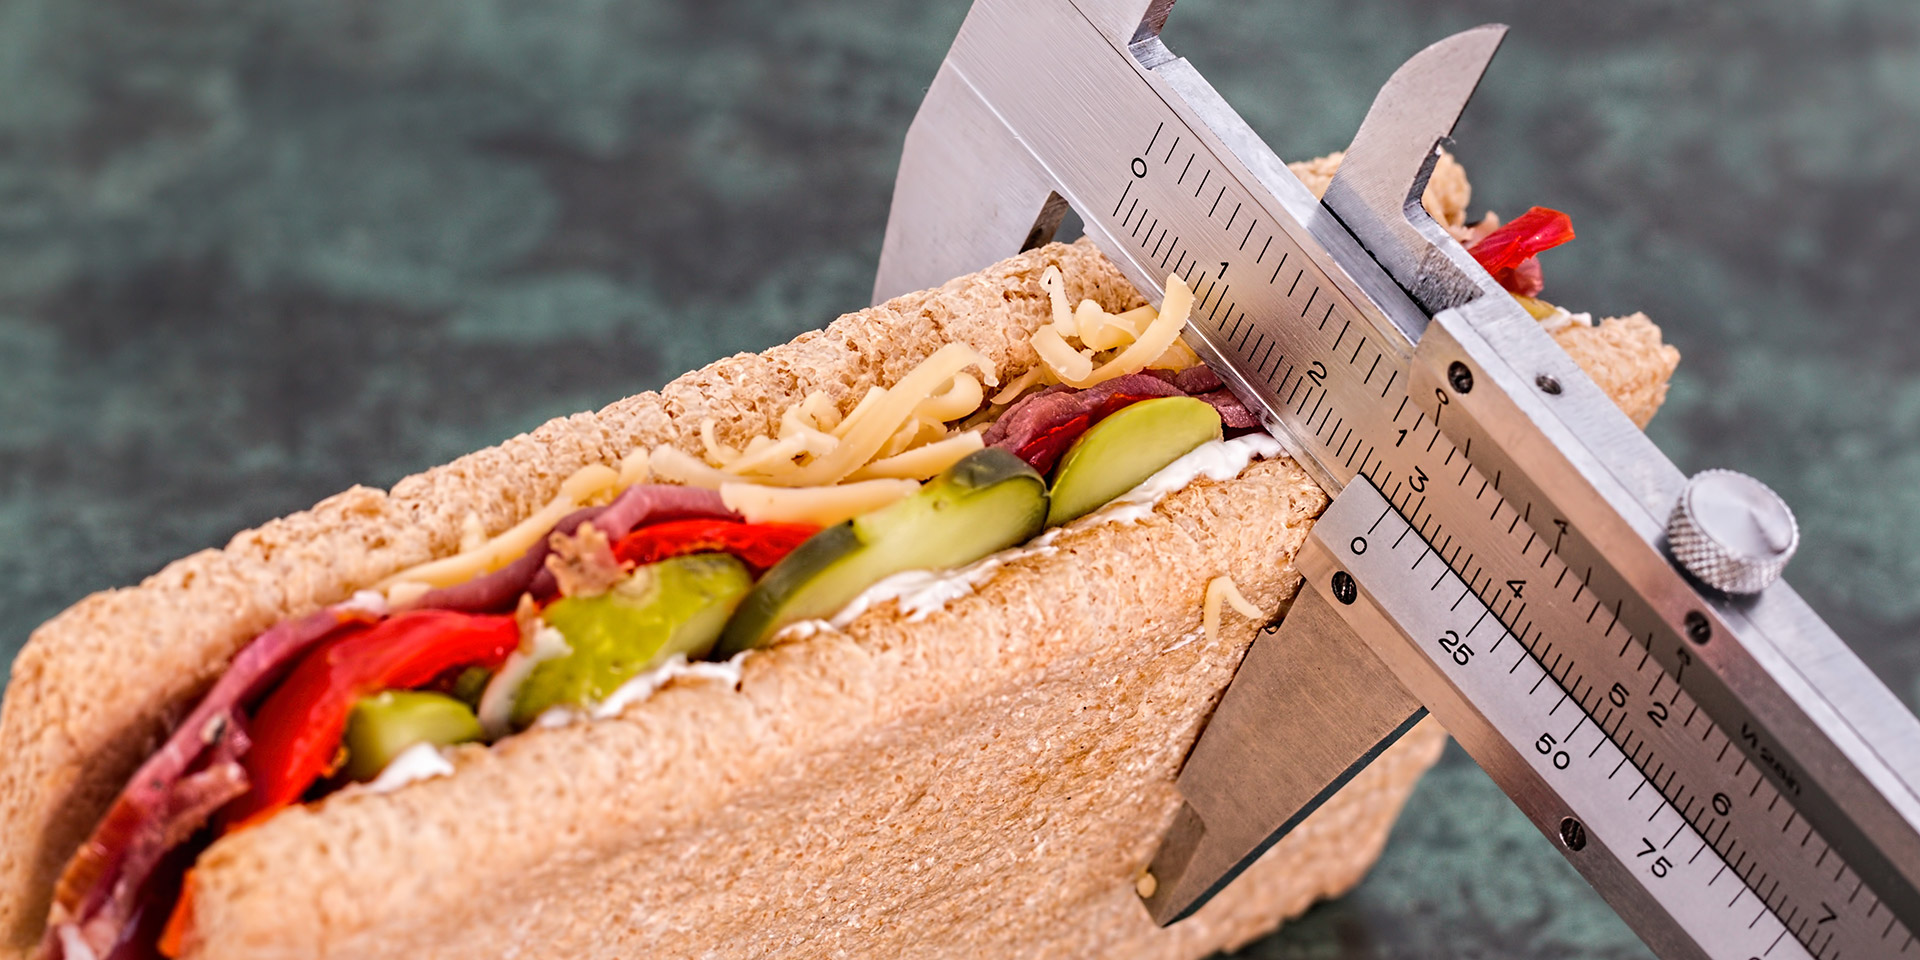 Measuring the thickness of a sandwich